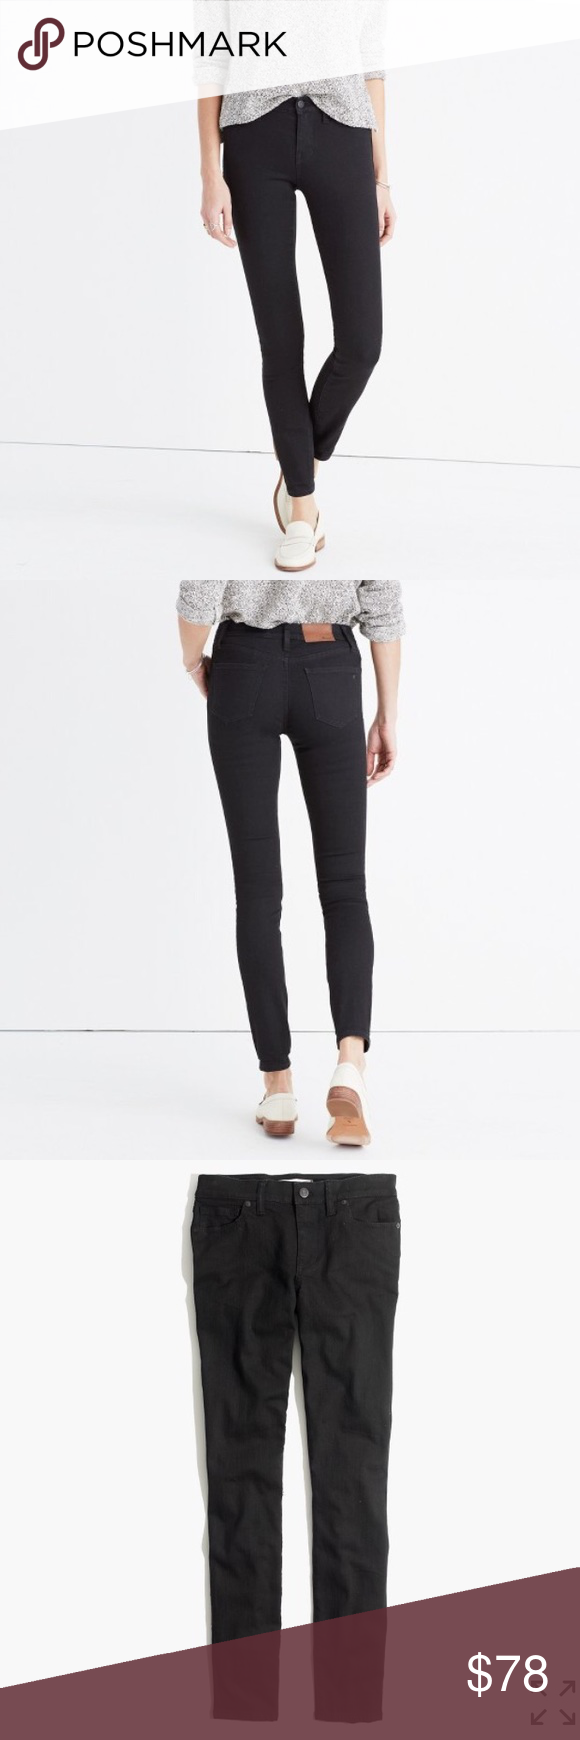 "🎀NEW🎀MADEWELL 8"" Skinny Skinny in Blackfrost 🎀NEW🎀MADEWELL 8"" Skinny Jeans in Blackfrost. ❌no trading or holding✅REASONABLE OFFERS ACCEPTED✅ Madewell Jeans Skinny"